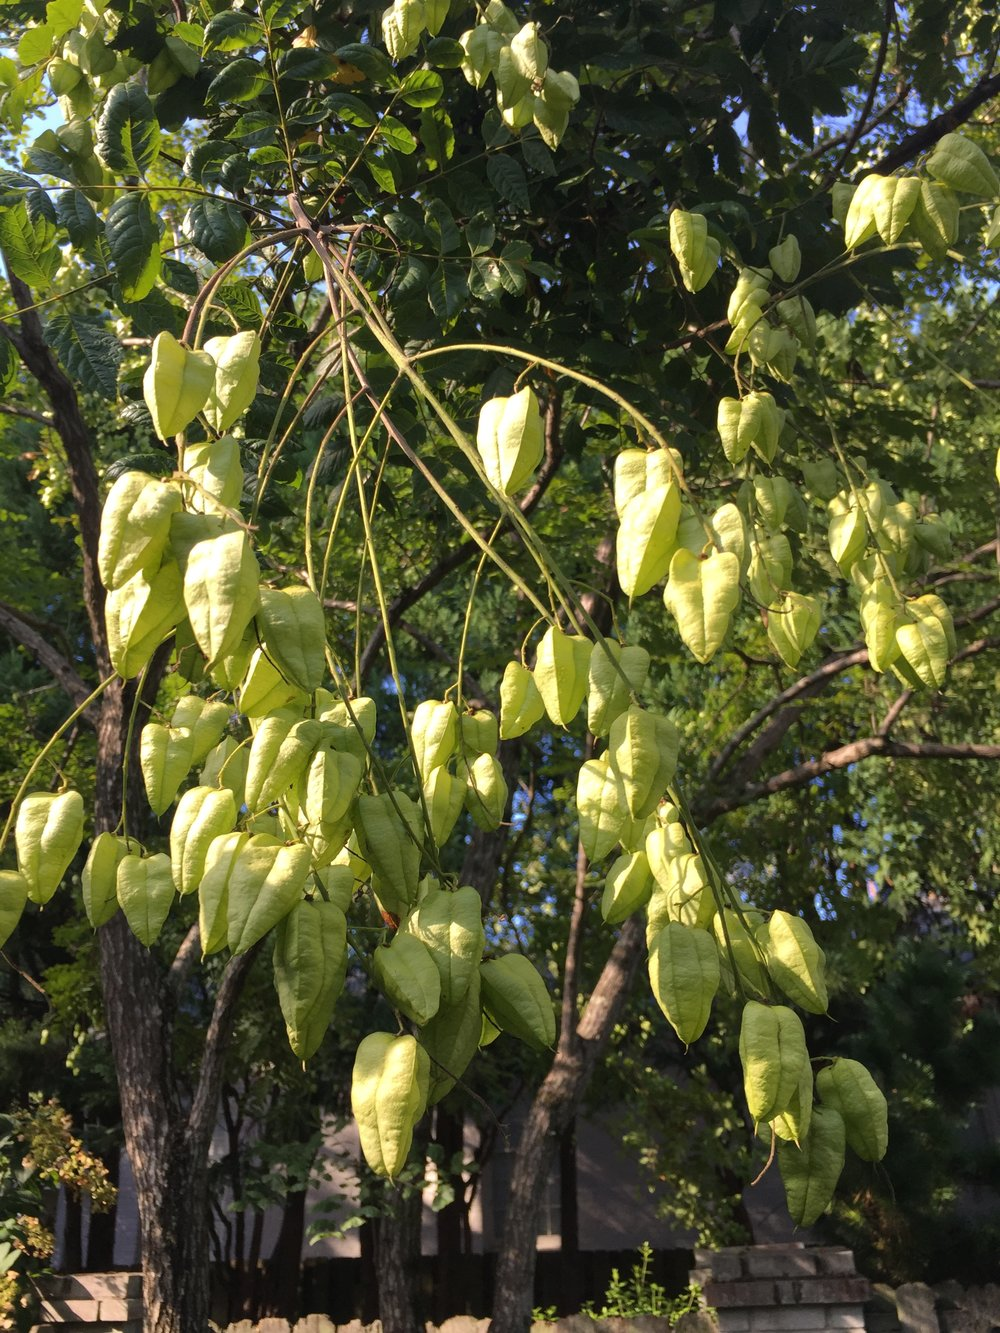 Goldenrain tree seedpods make great additions to cut flower arrangements.